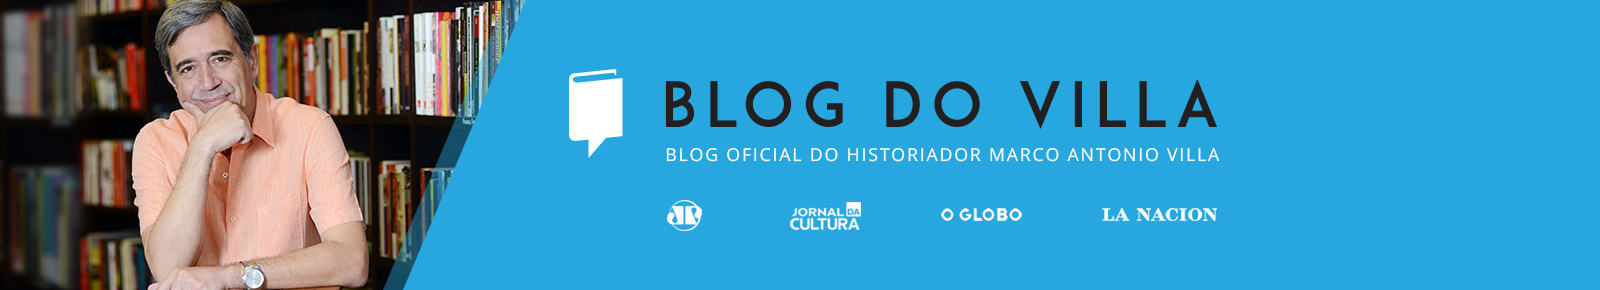 BLOG DO VILLA